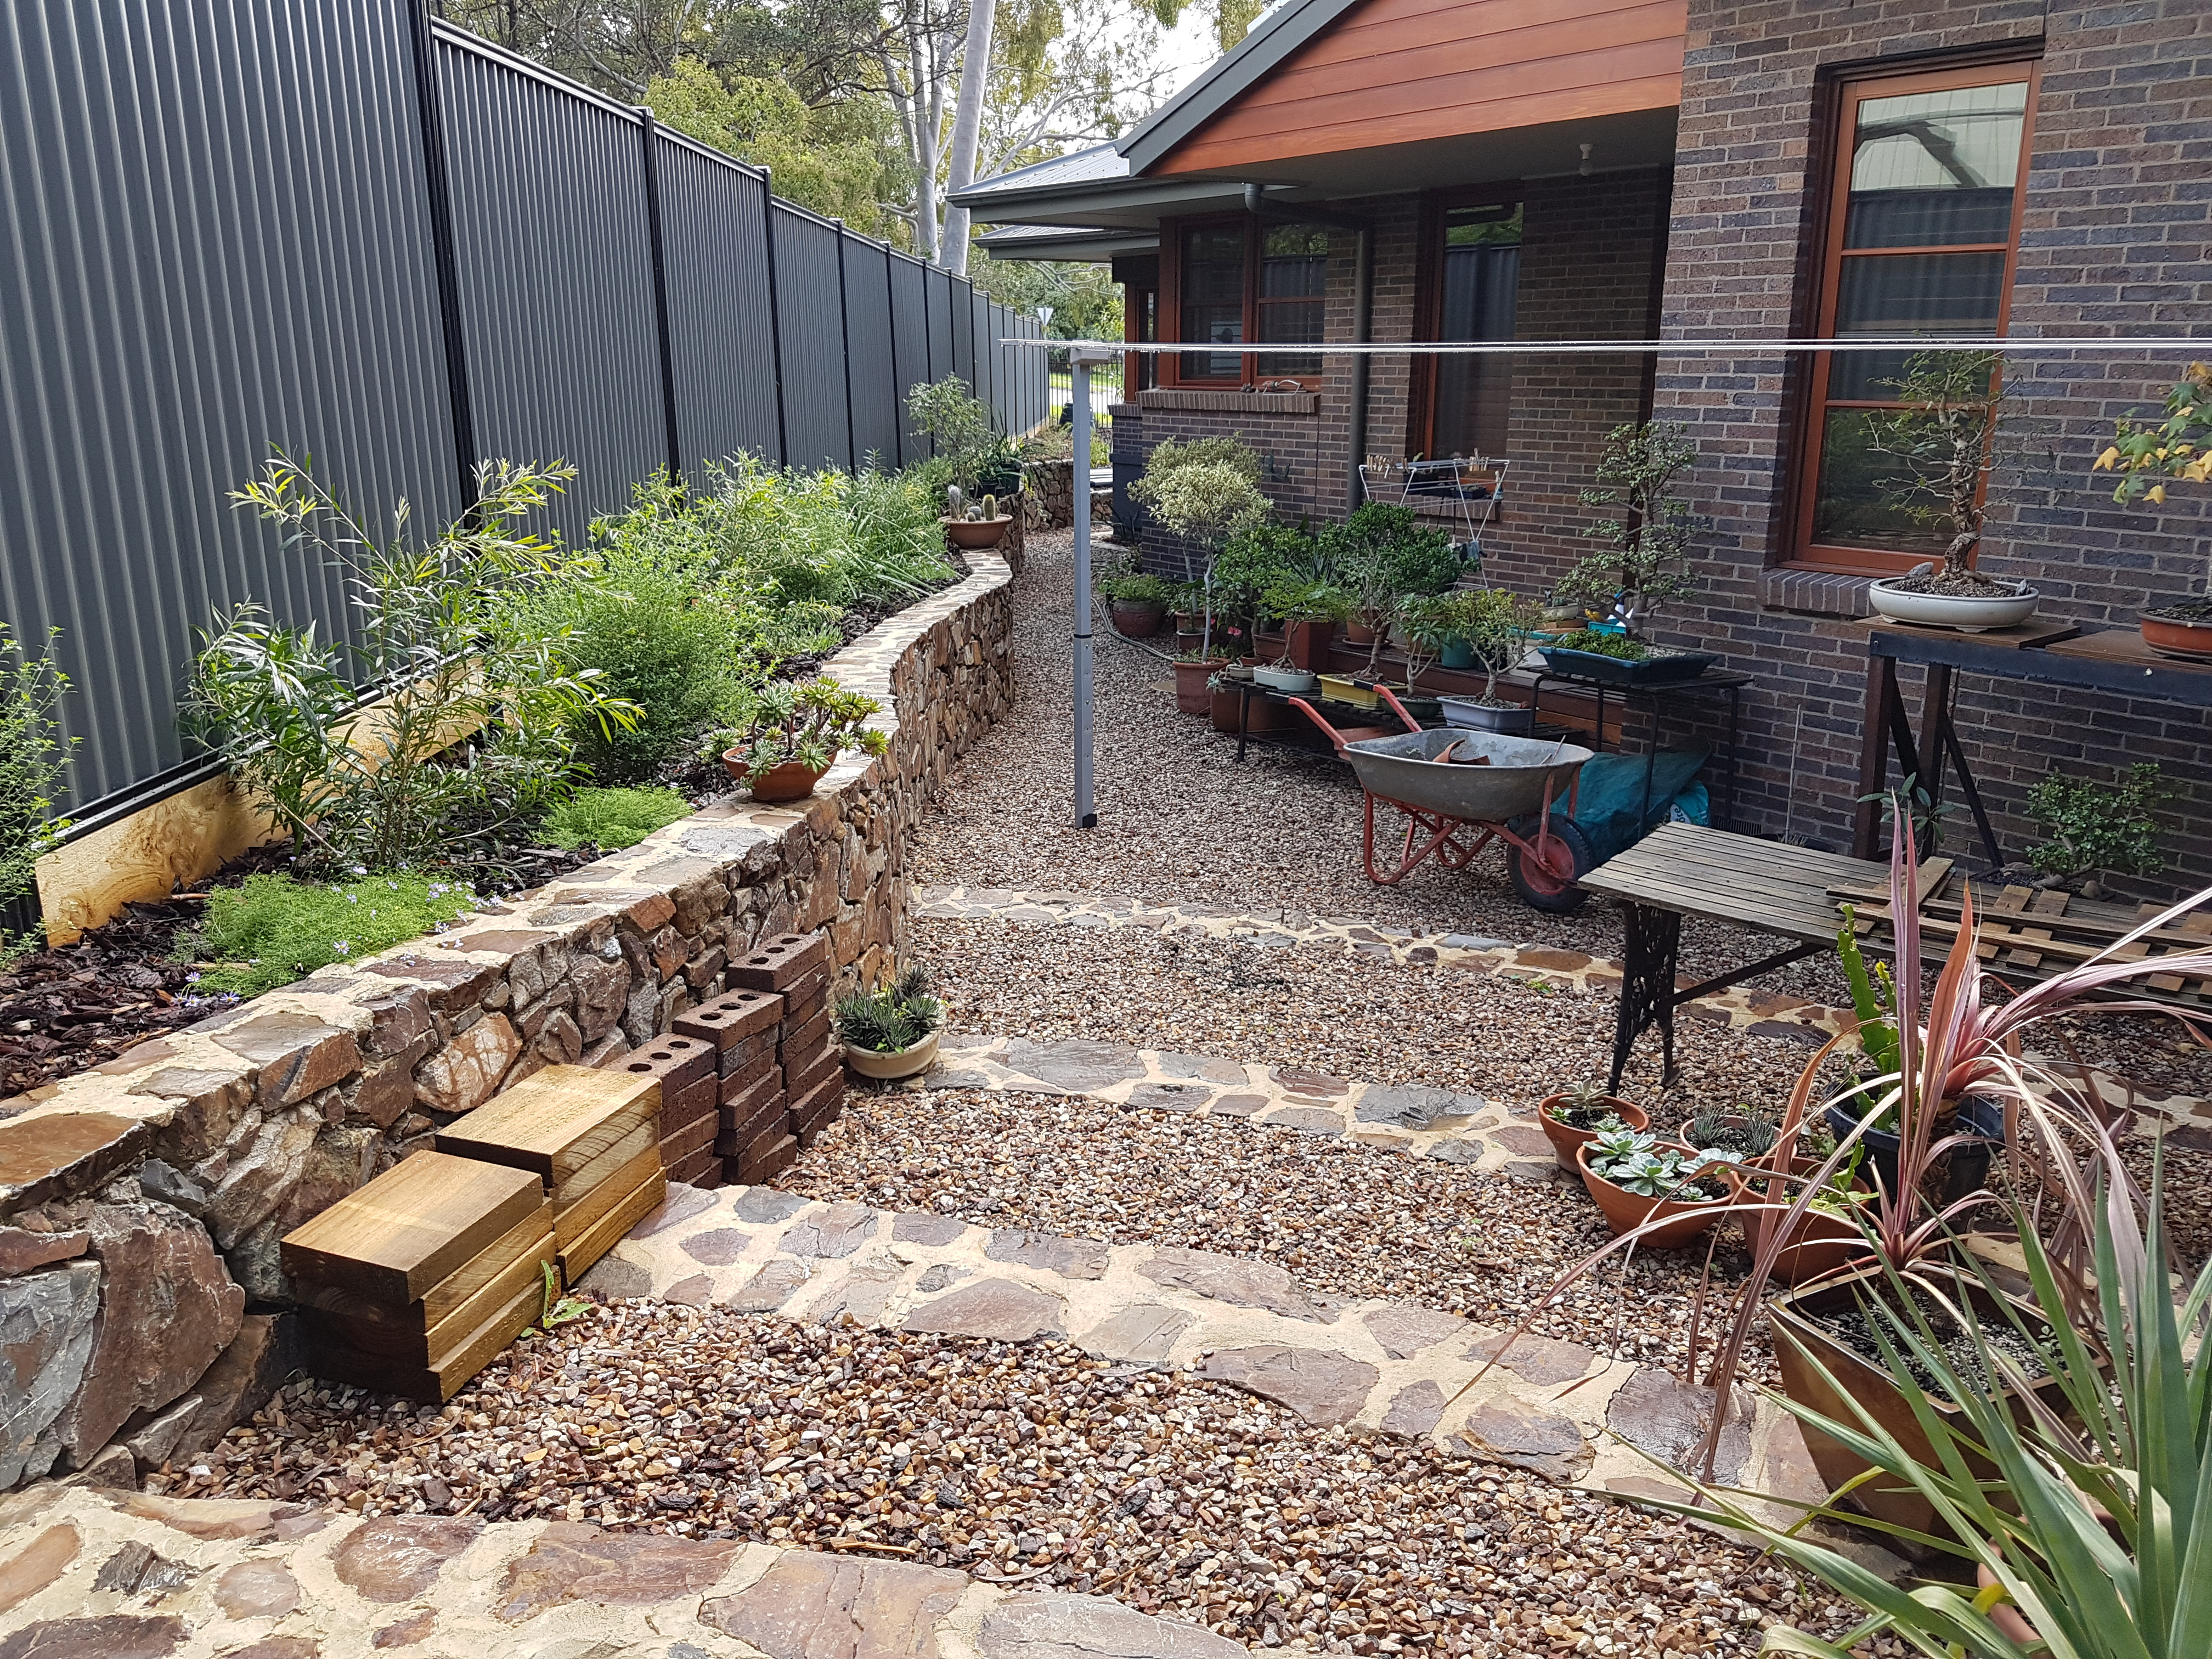 Sideway, utilily area, coldstream stone retaining wall and steps, 20mm crushed sandstone path